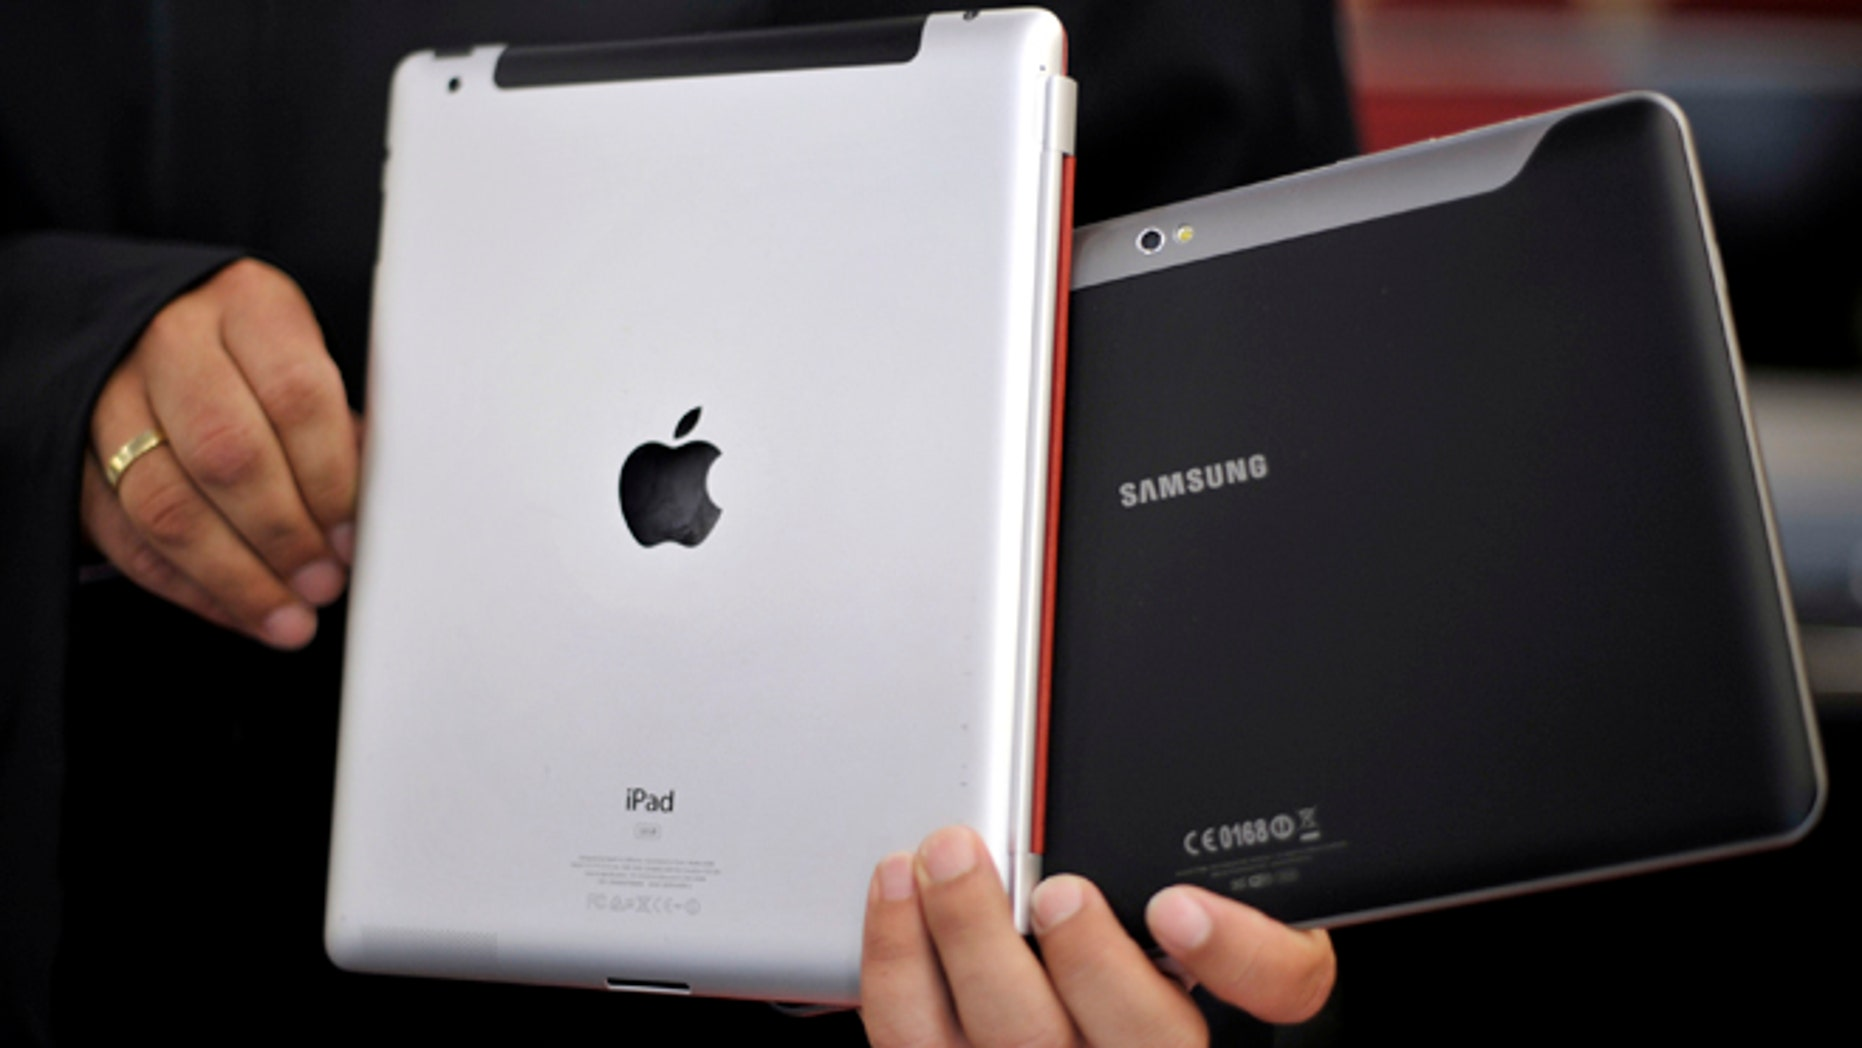 Aug. 25, 2011: An attorney holds an Apple iPad, left, and a Samsung Galaxy Tab 10.1 at the regional court in Duesseldorf, Germany.